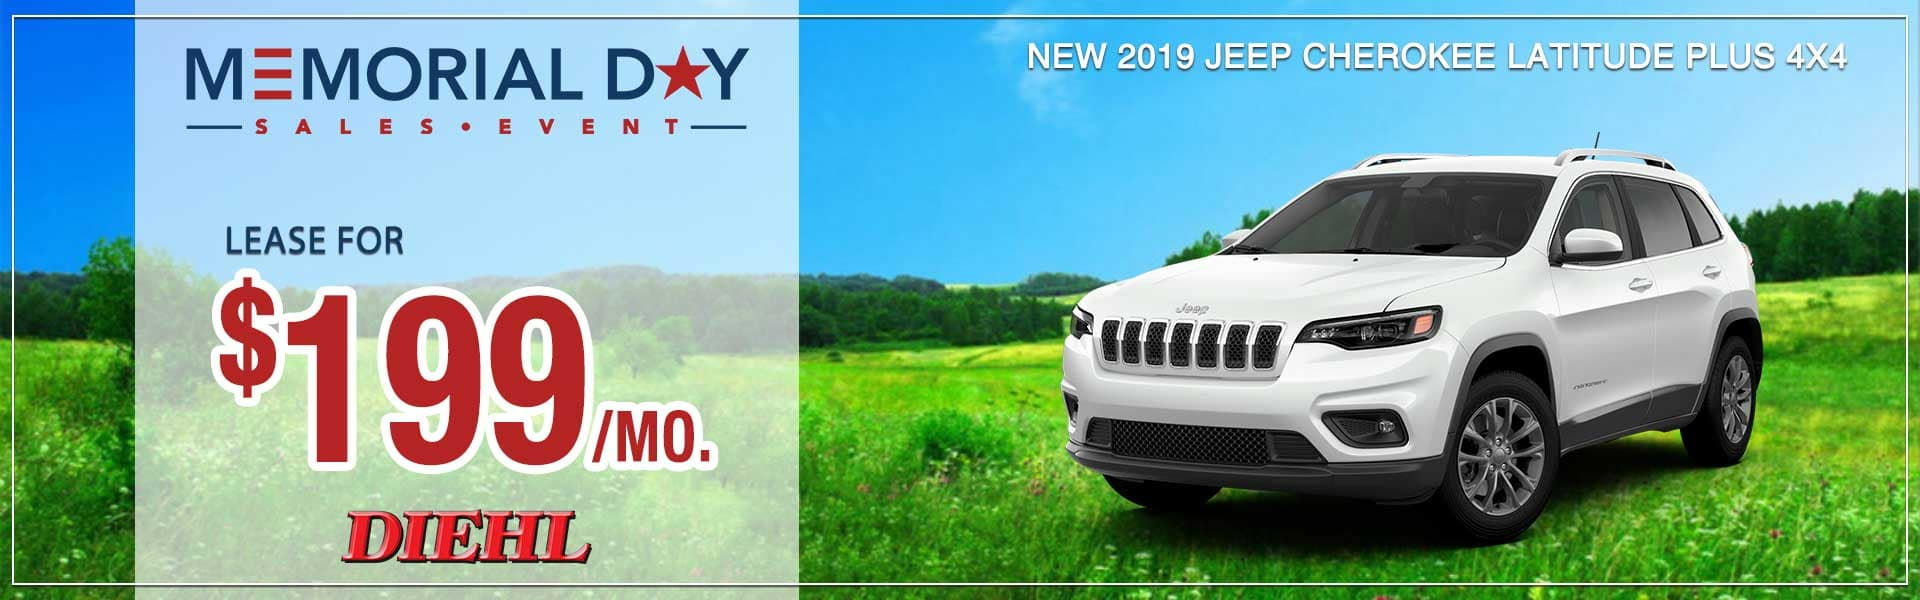 Diehl of Robinson Robinson Township, pa. Chrysler Jeep Dodge Ram. New, used, parts, service, accessories NEW 2019 JEEP COMPASS LATITUDE 4X4